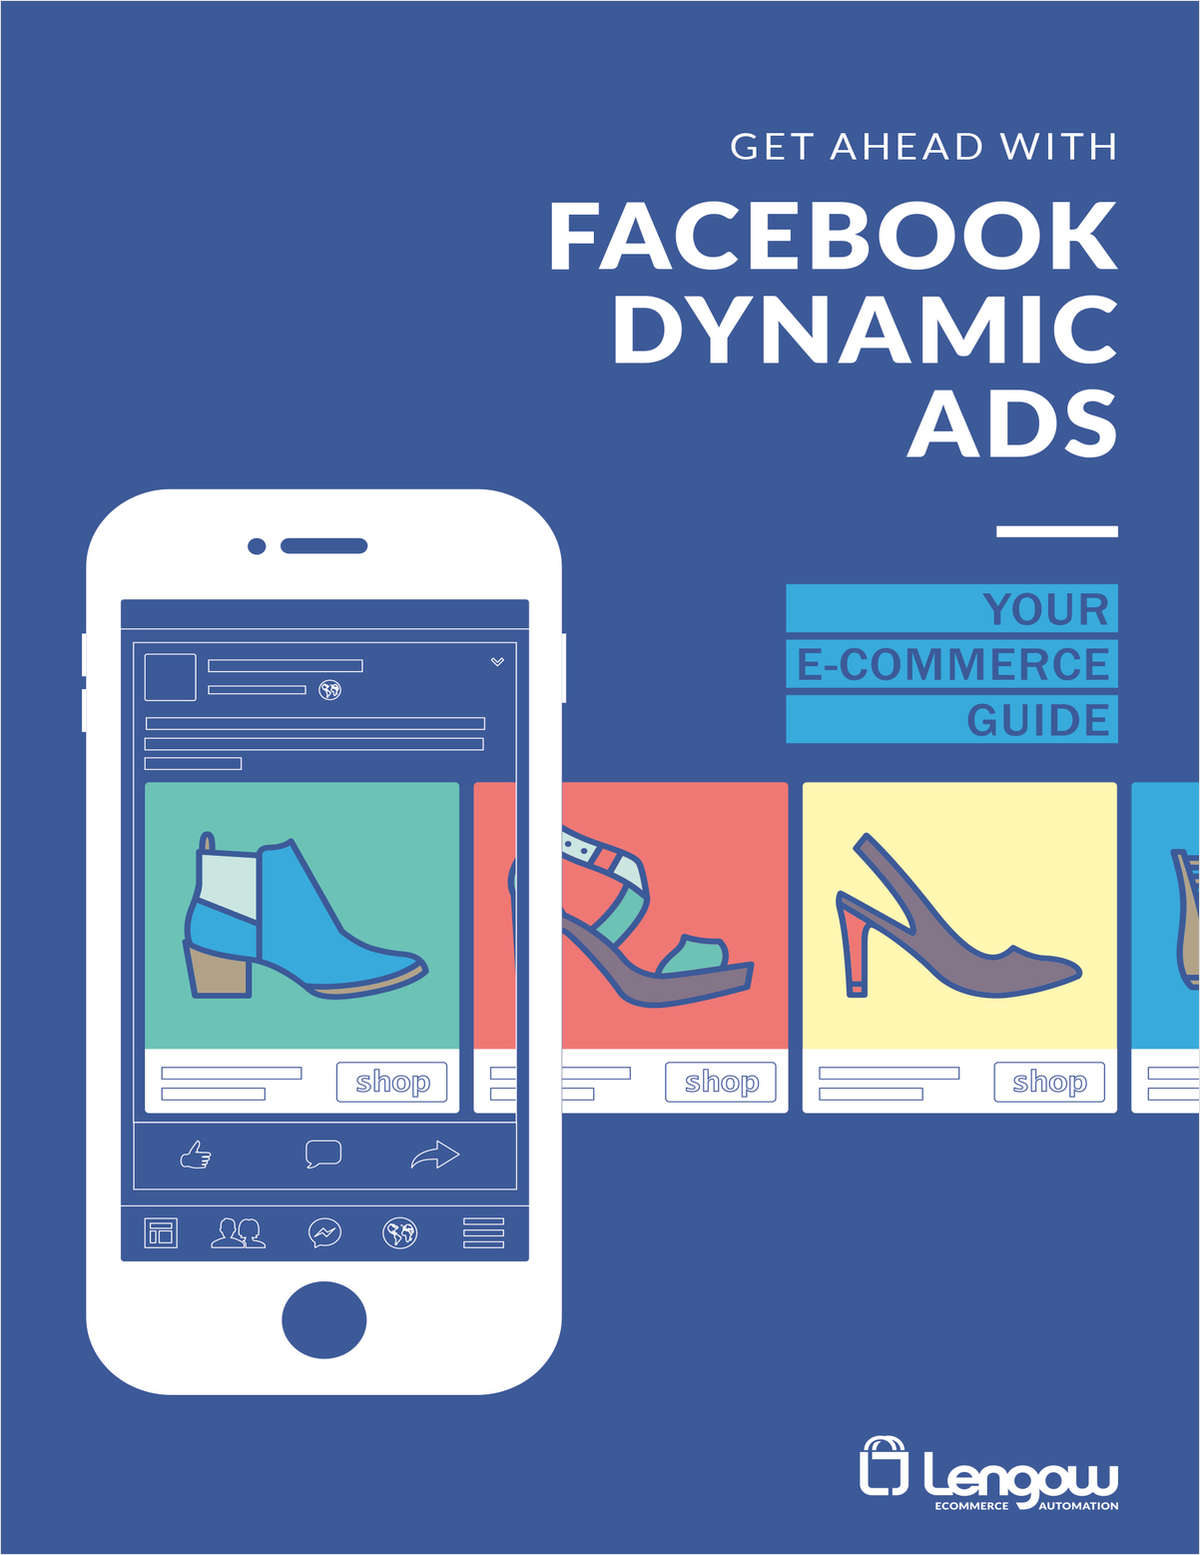 GET AHEAD WITH FACEBOOK DYNAMIC ADS